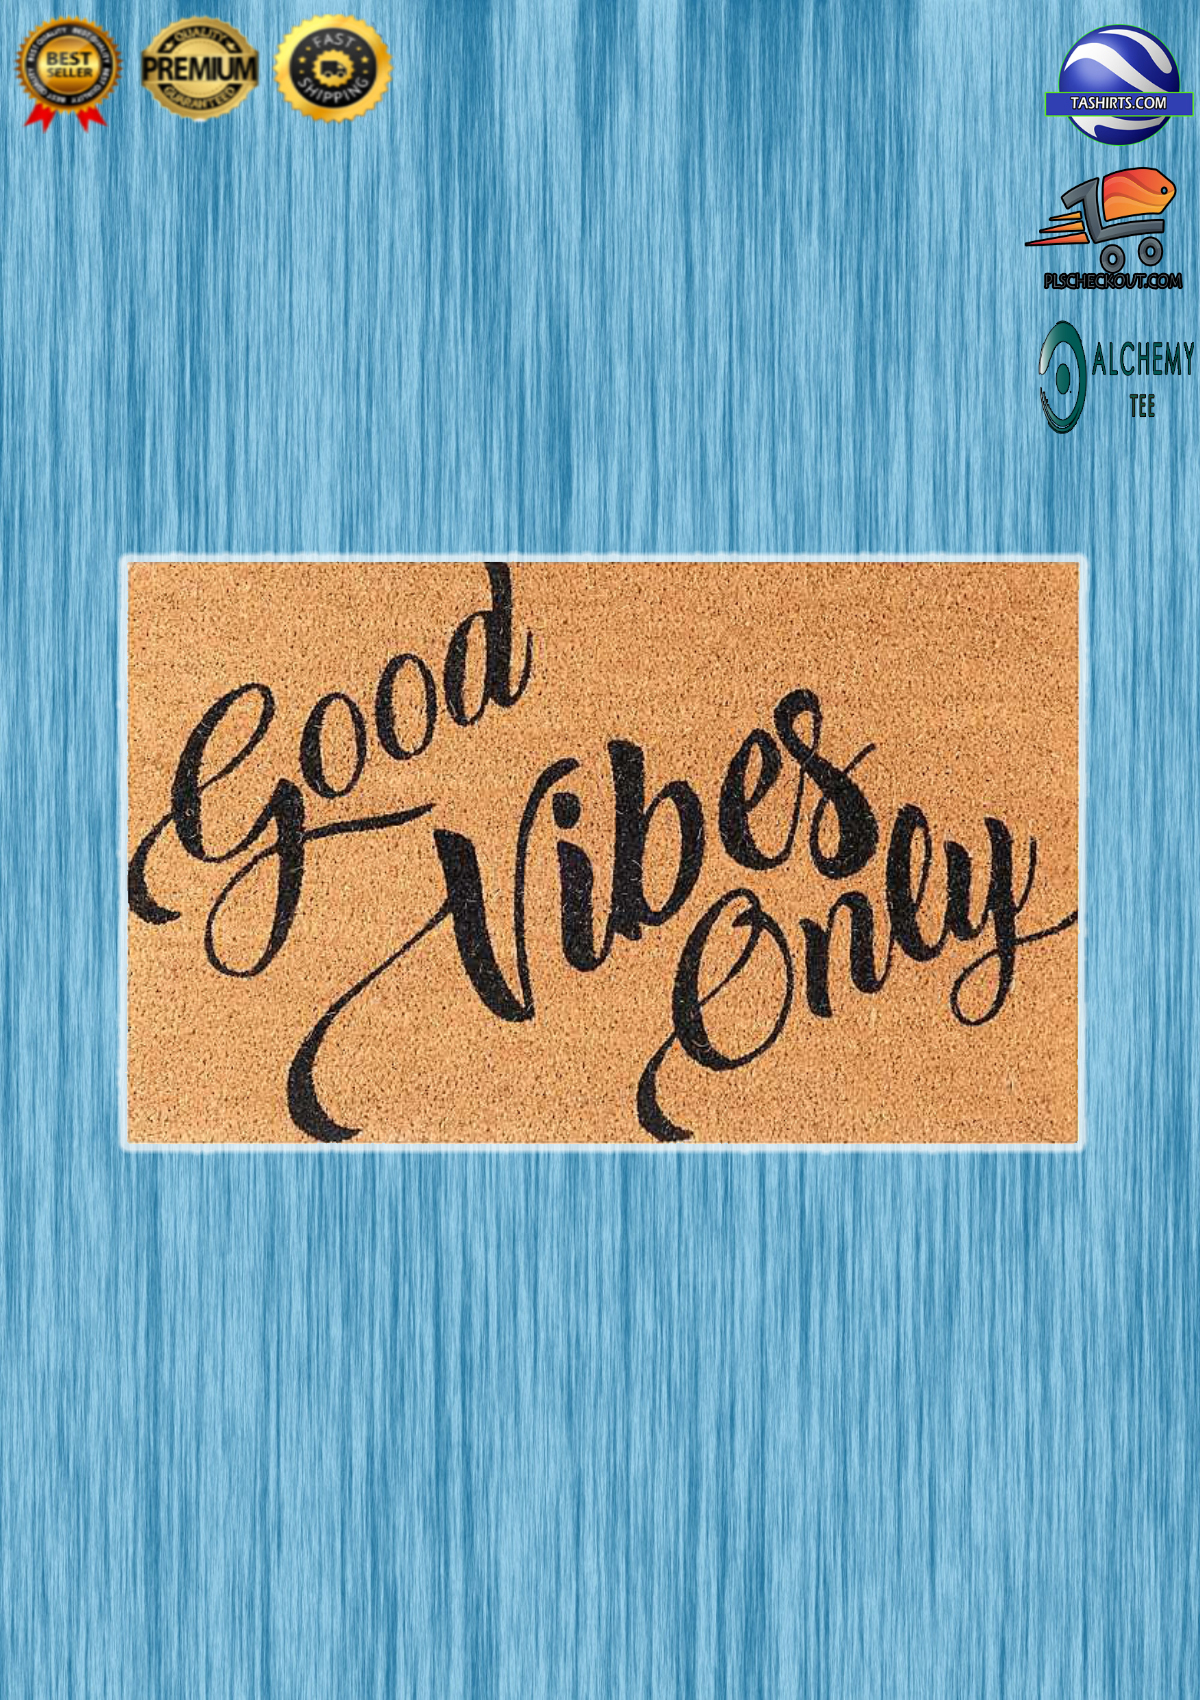 Good vibes only welcome doormat 3